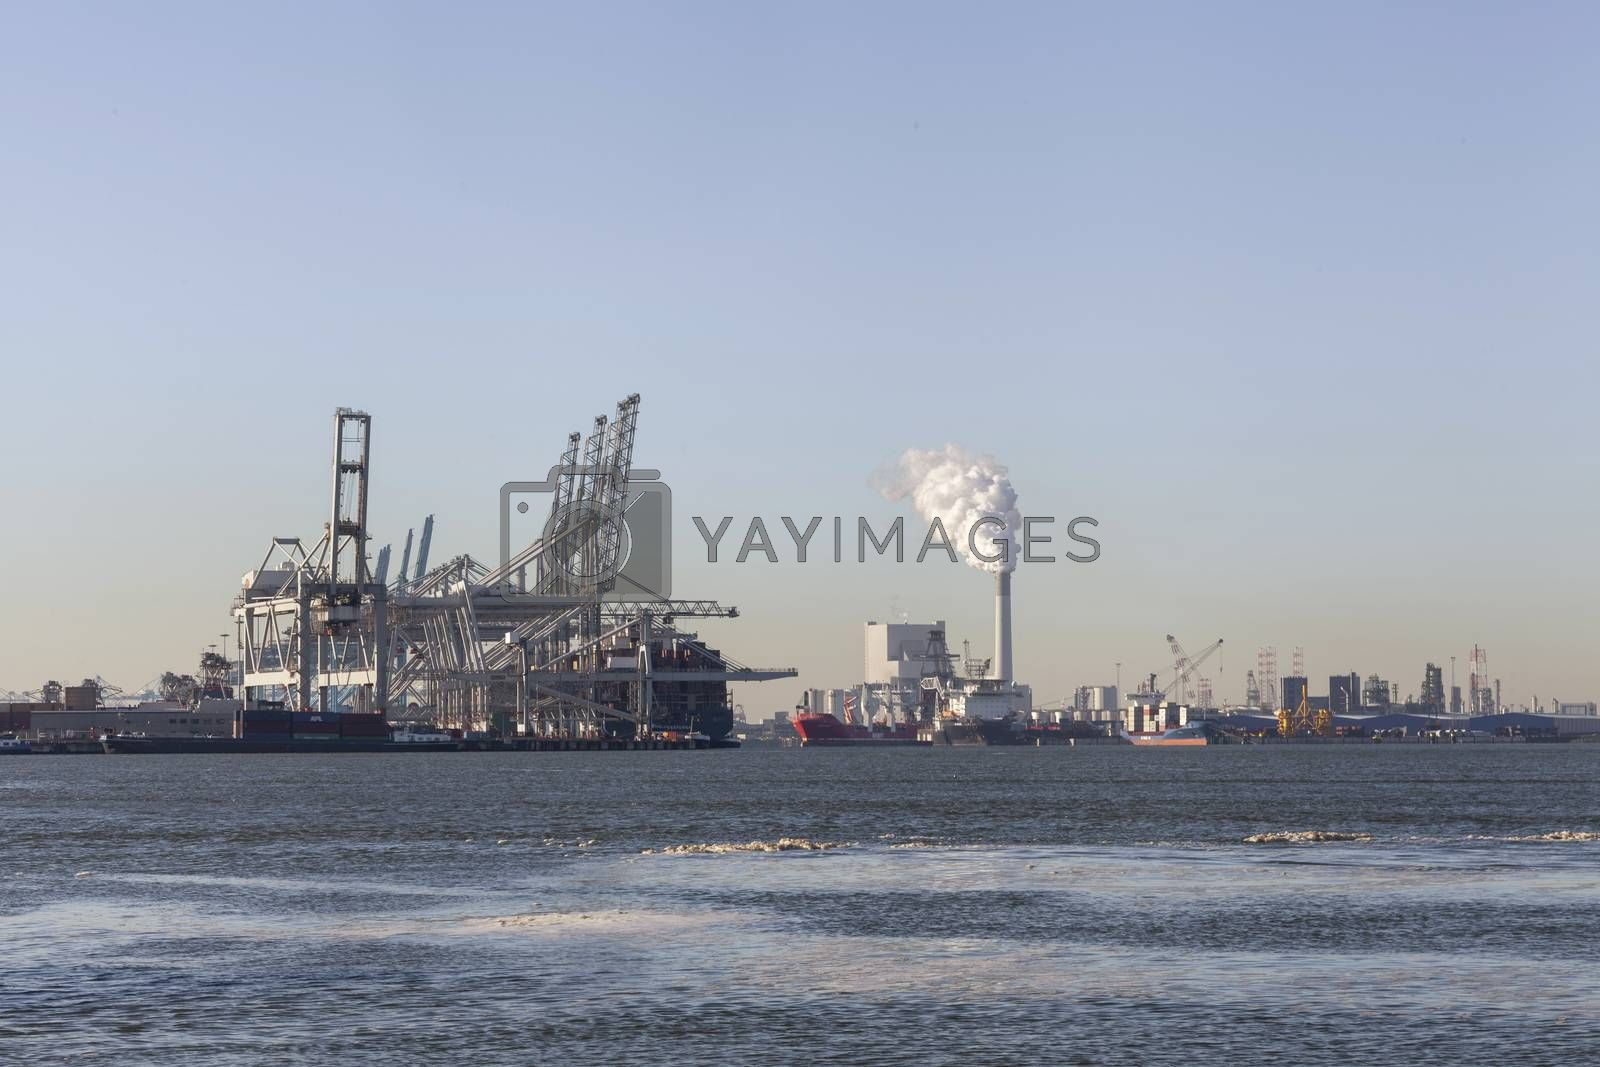 shipping container terminal at dusk, modern harbor and global trade background, Rotterdam